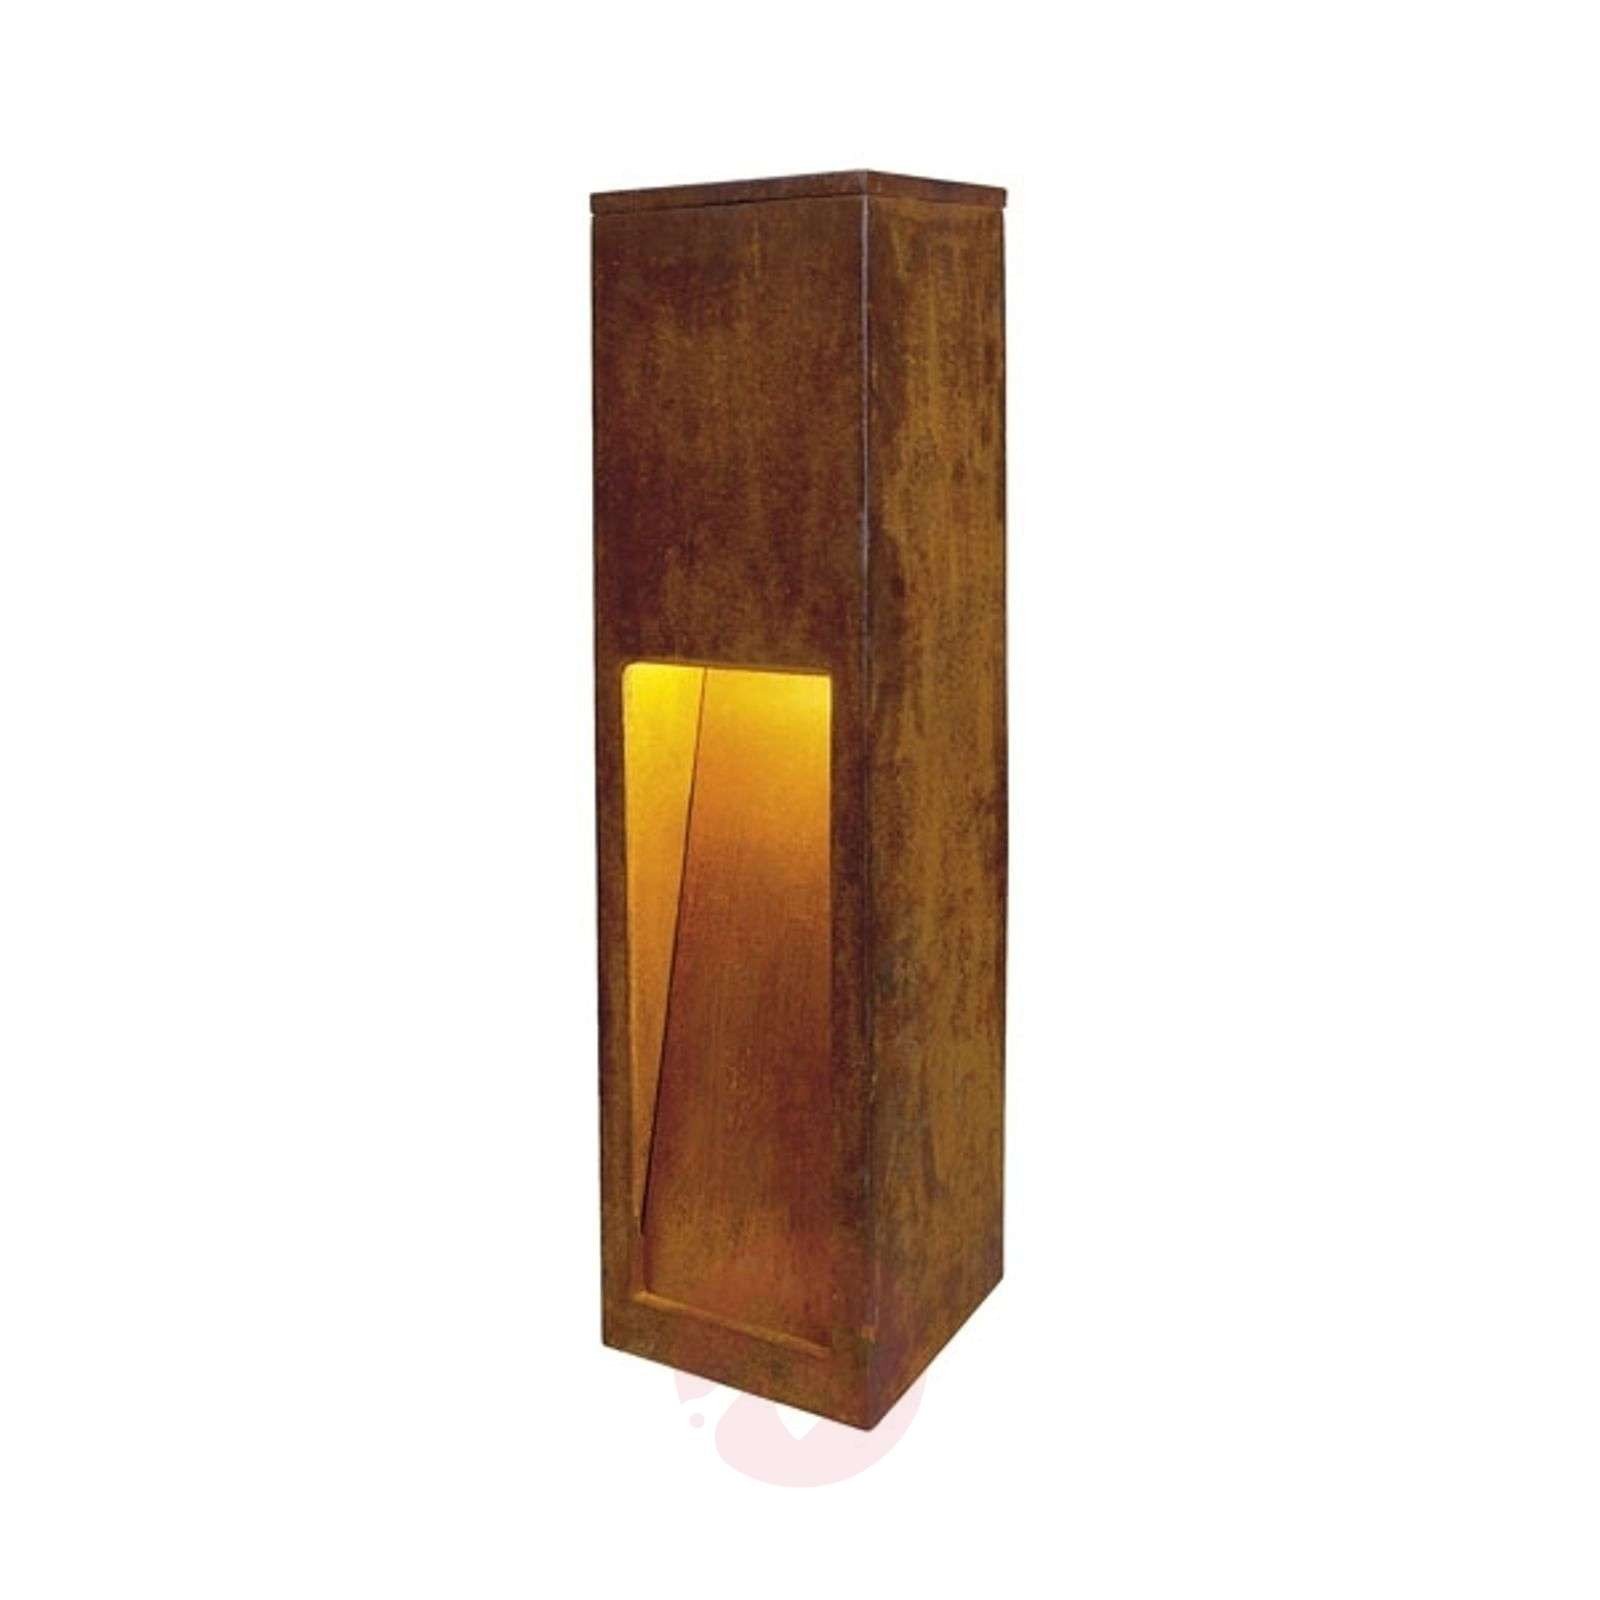 luminaire pour socle haut de gamme rusty slot 50. Black Bedroom Furniture Sets. Home Design Ideas